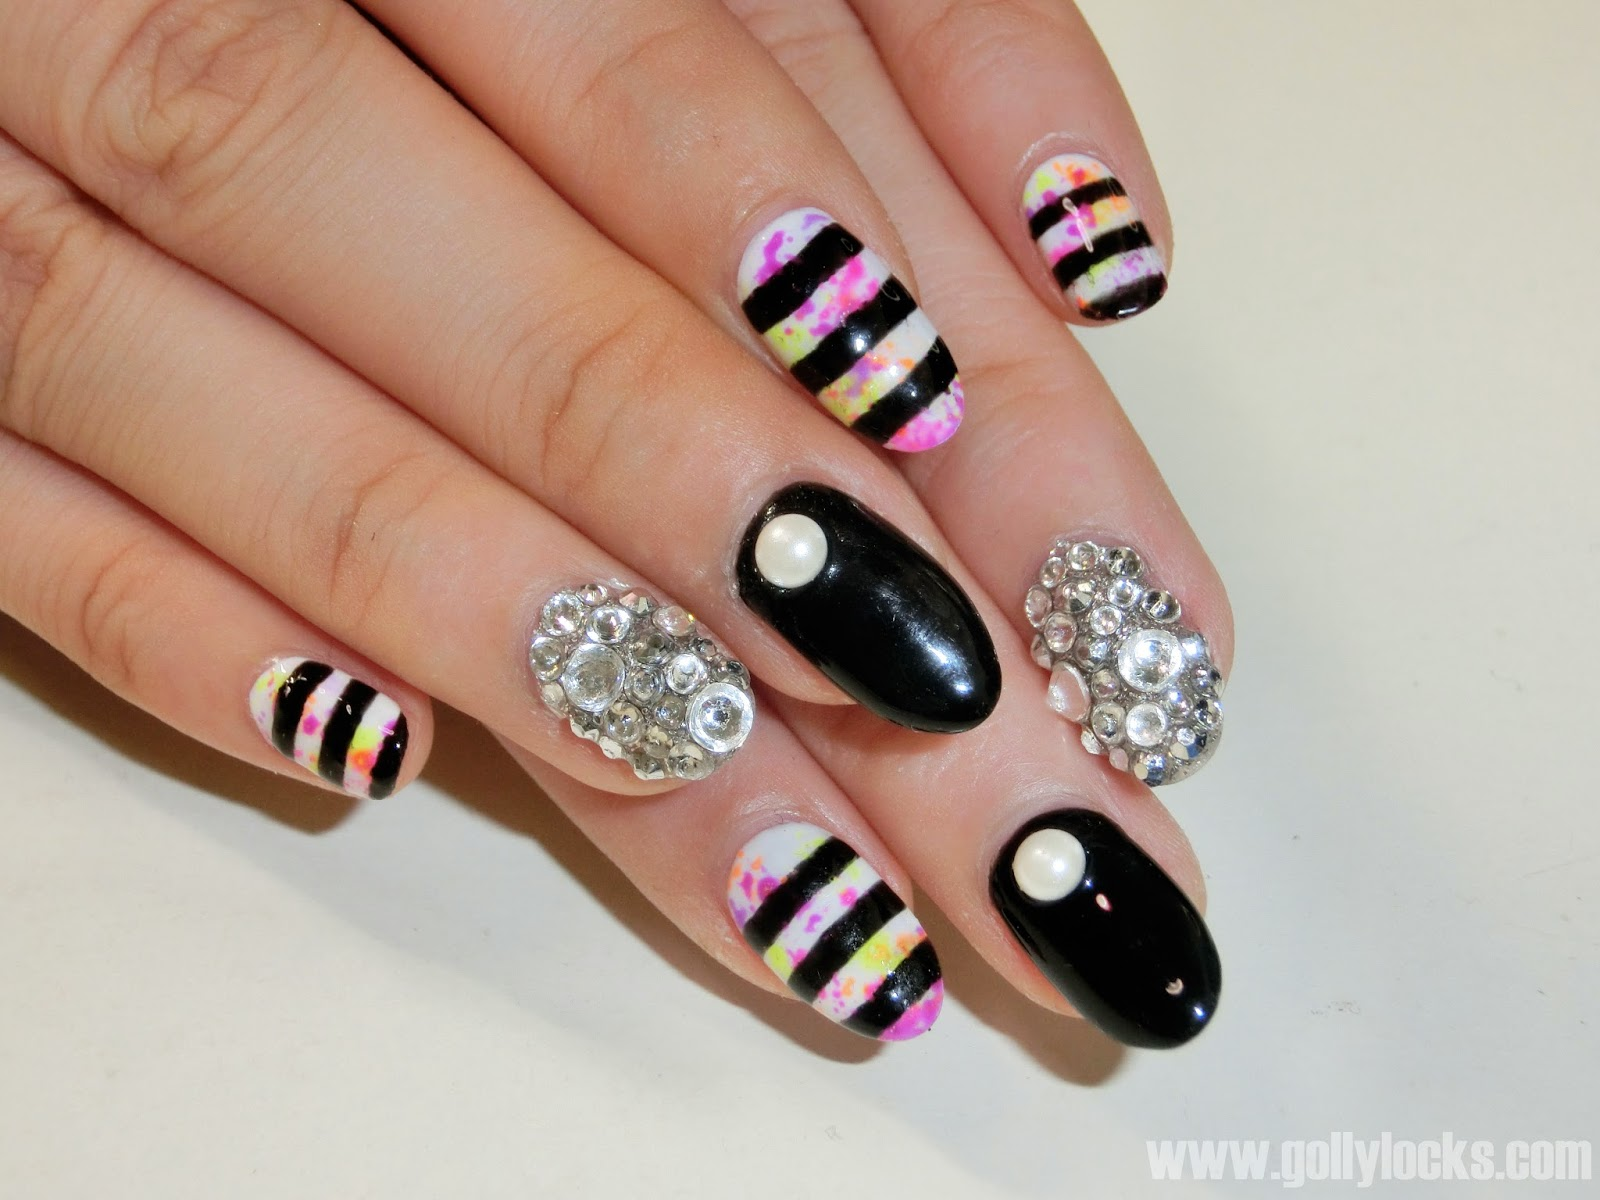 gollylocks-superstar-graffiti-nail-1